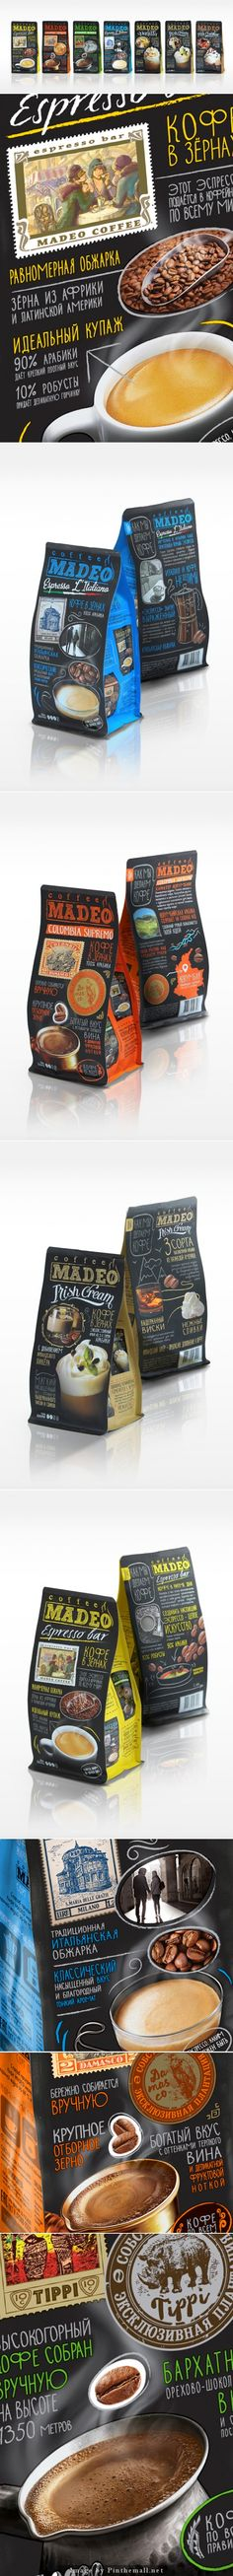 Madeo Coffee Creative Agency: Getbrand Project type: Commercial Work Location: Russia